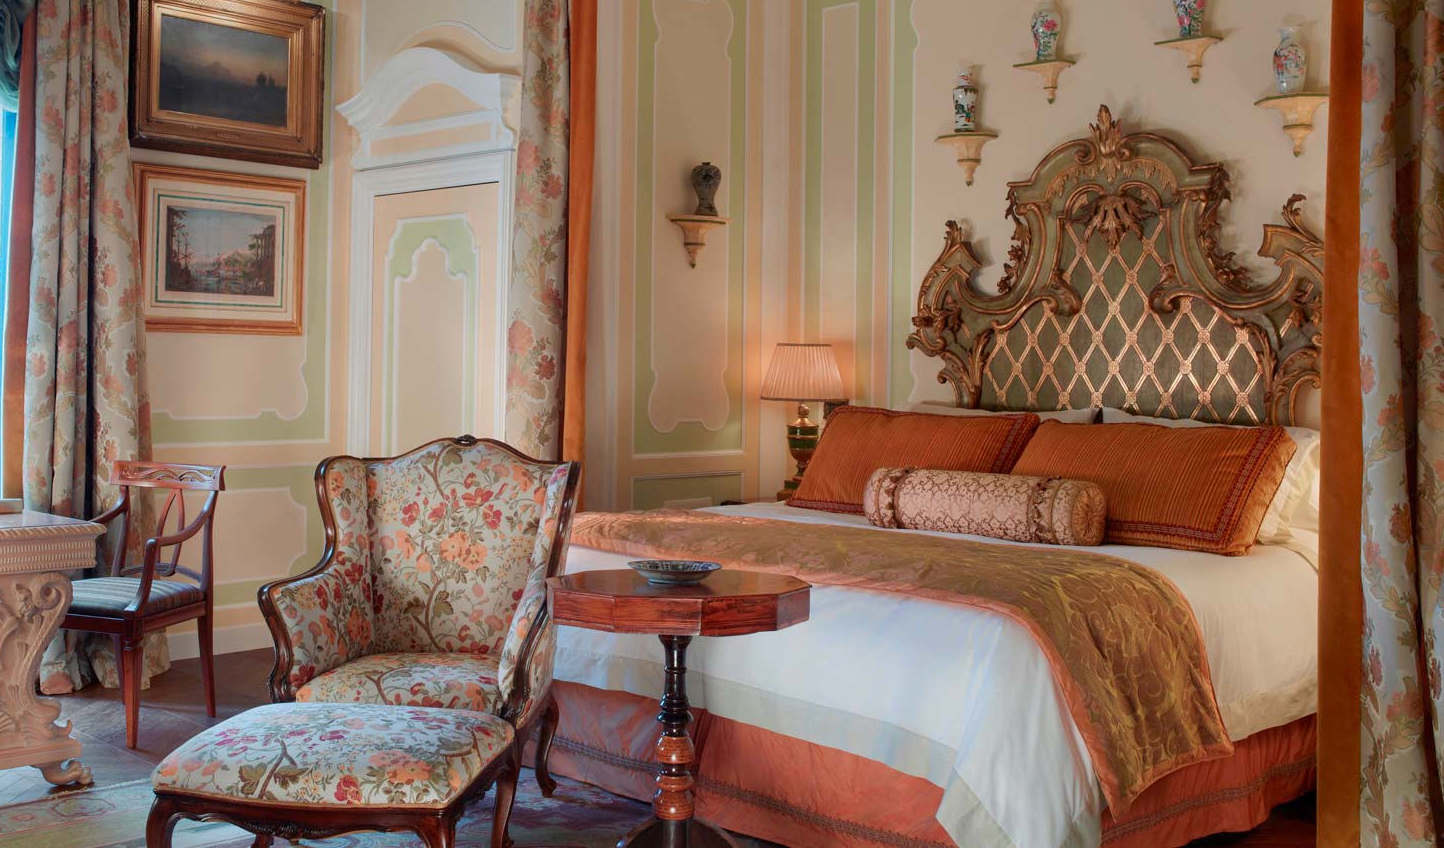 Traditional Venetian elegance in the Hemingway Suite